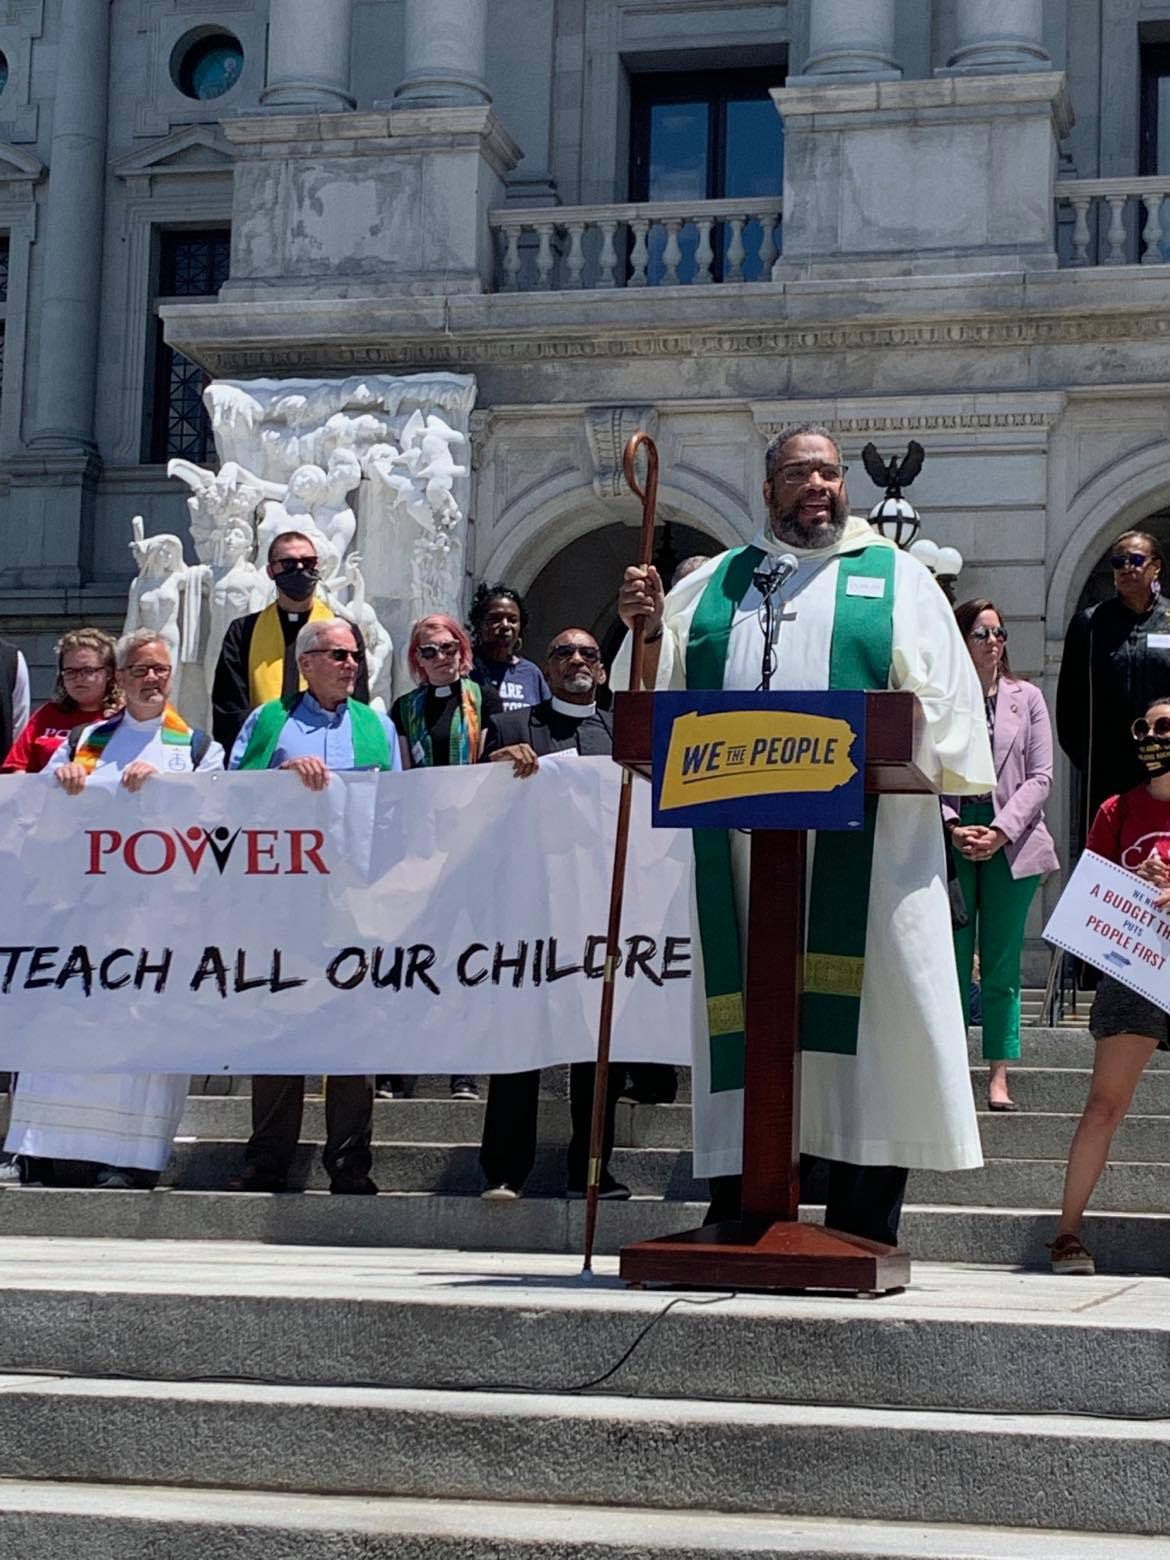 Rev. Dwayne Royster leads a rally on fair education funding at the state capitol building last month.